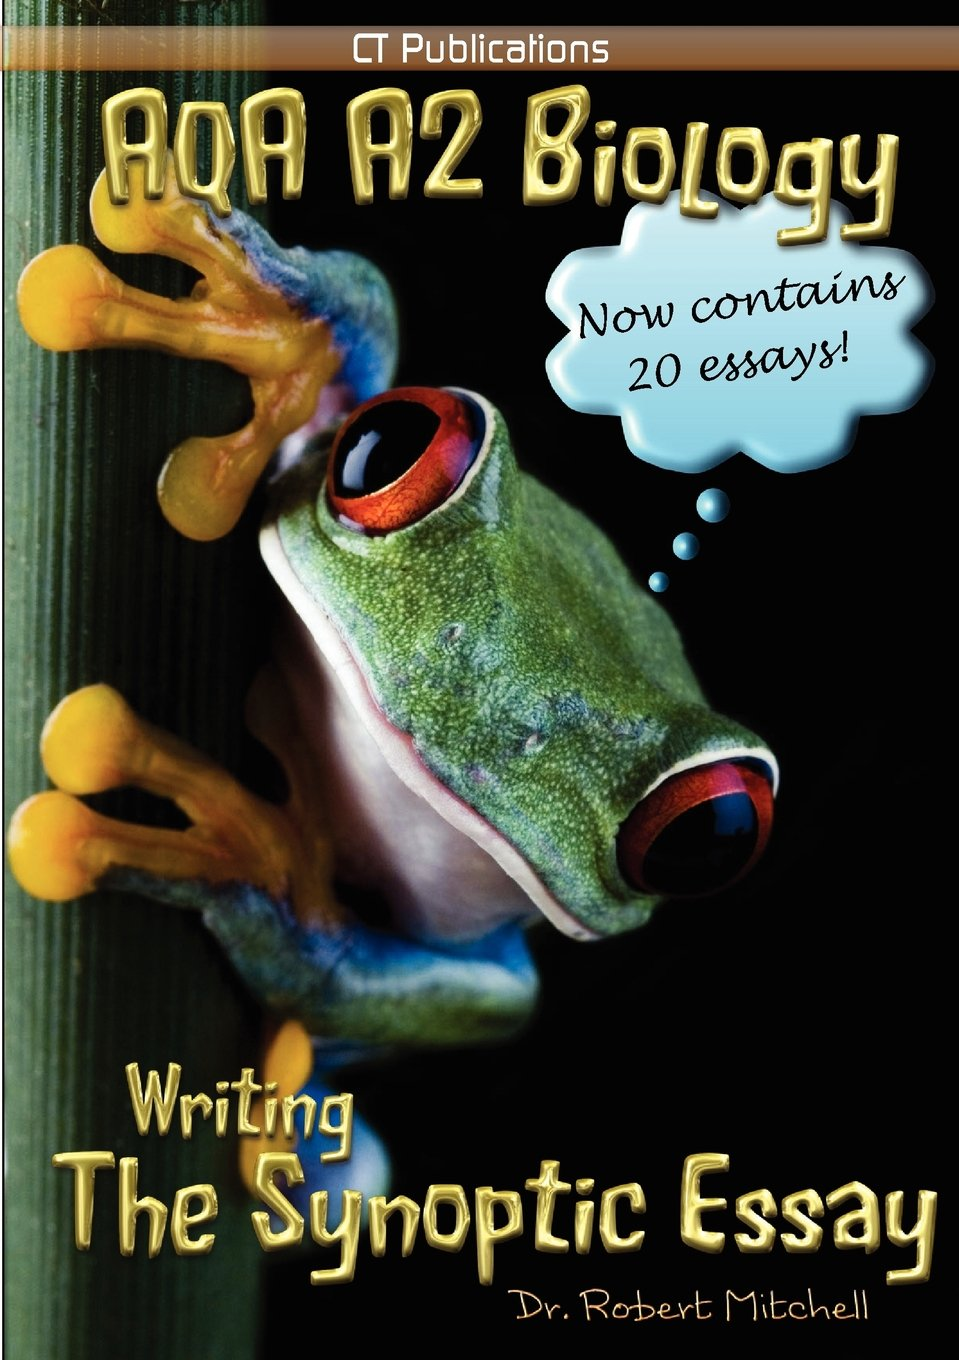 aqa a biology writing the synoptic essay amazon co uk r aqa a2 biology writing the synoptic essay amazon co uk r mitchell 9781907769009 books